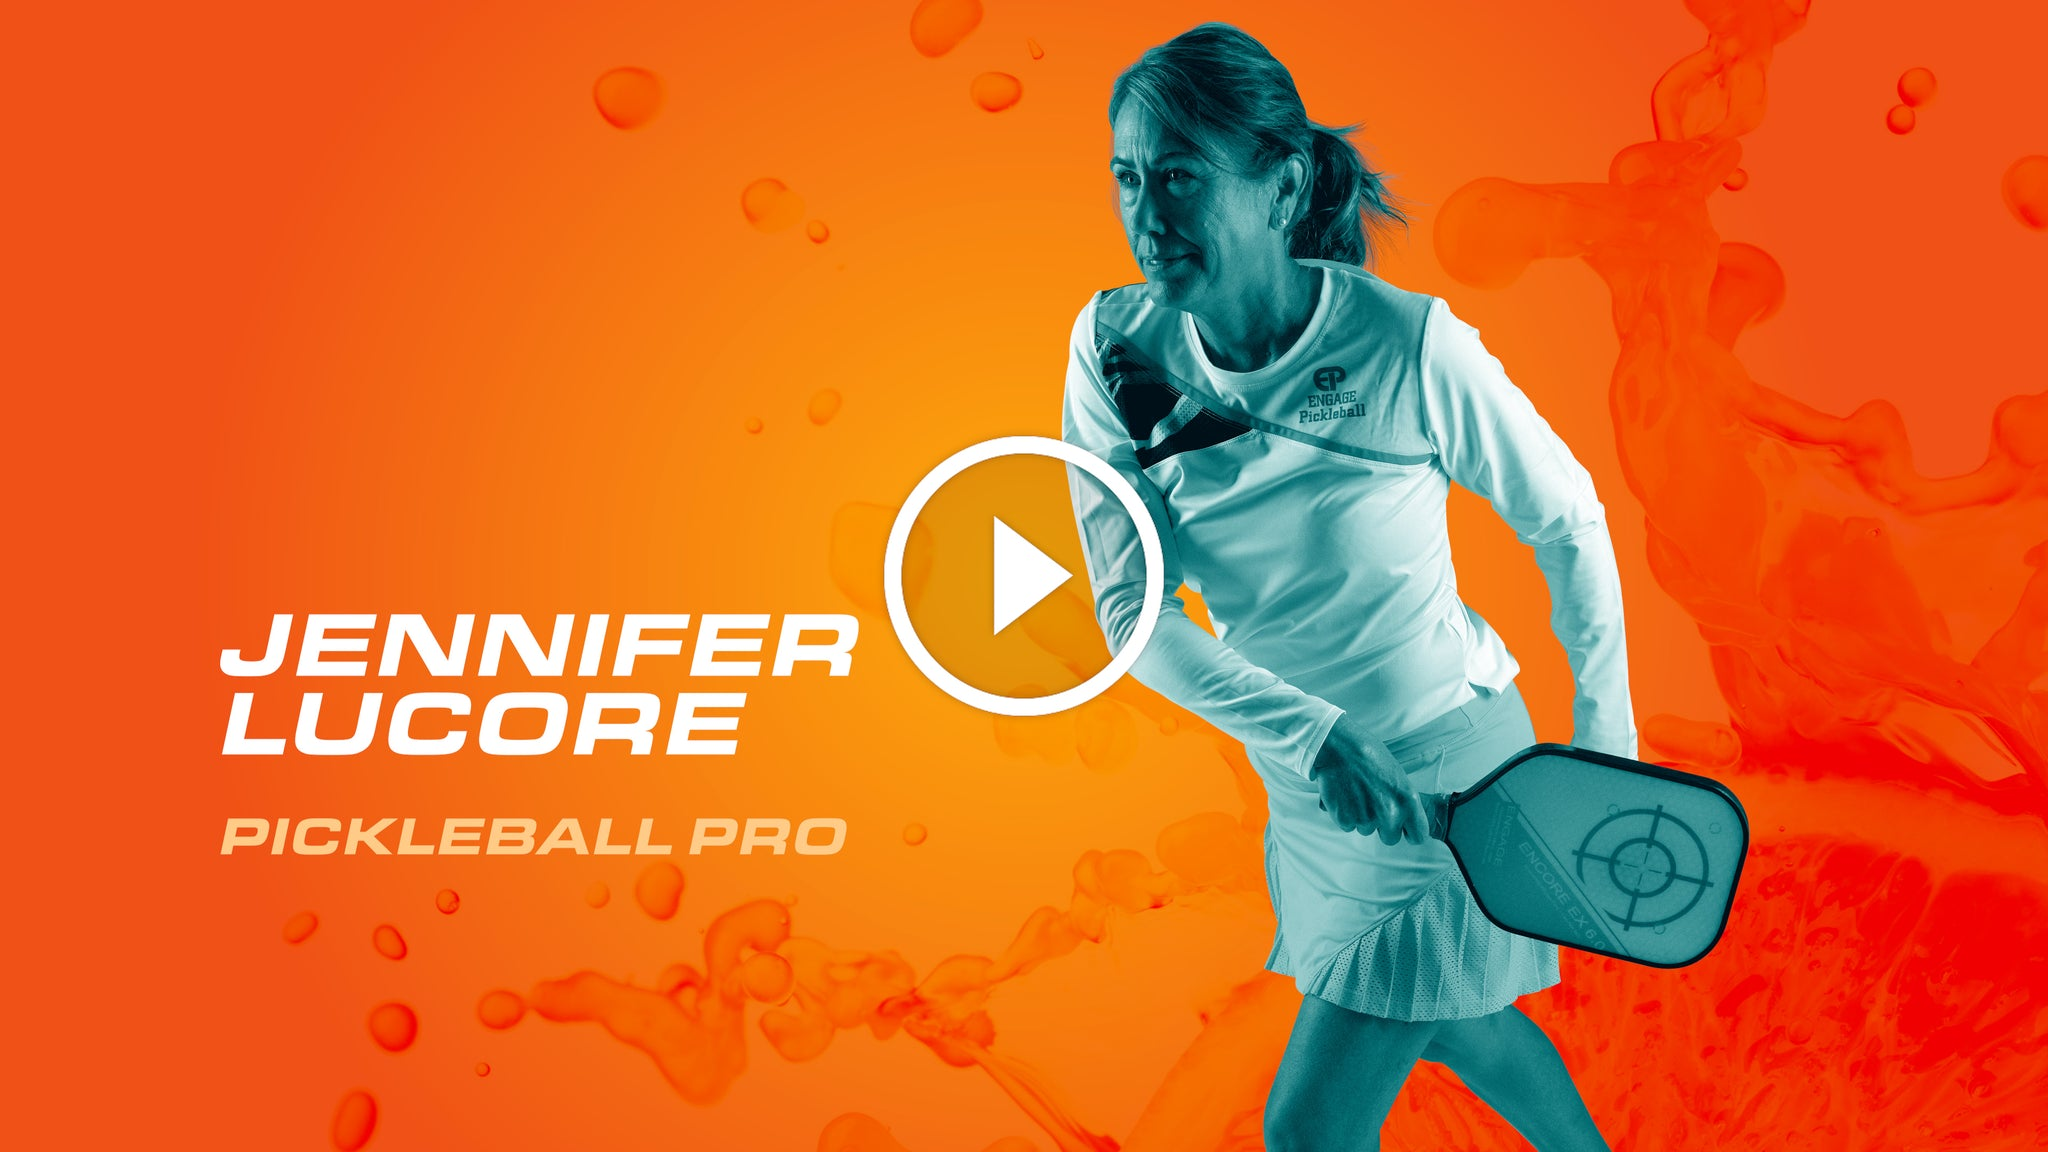 Jennifer Lucore | Jigsaw Pickleball Pro